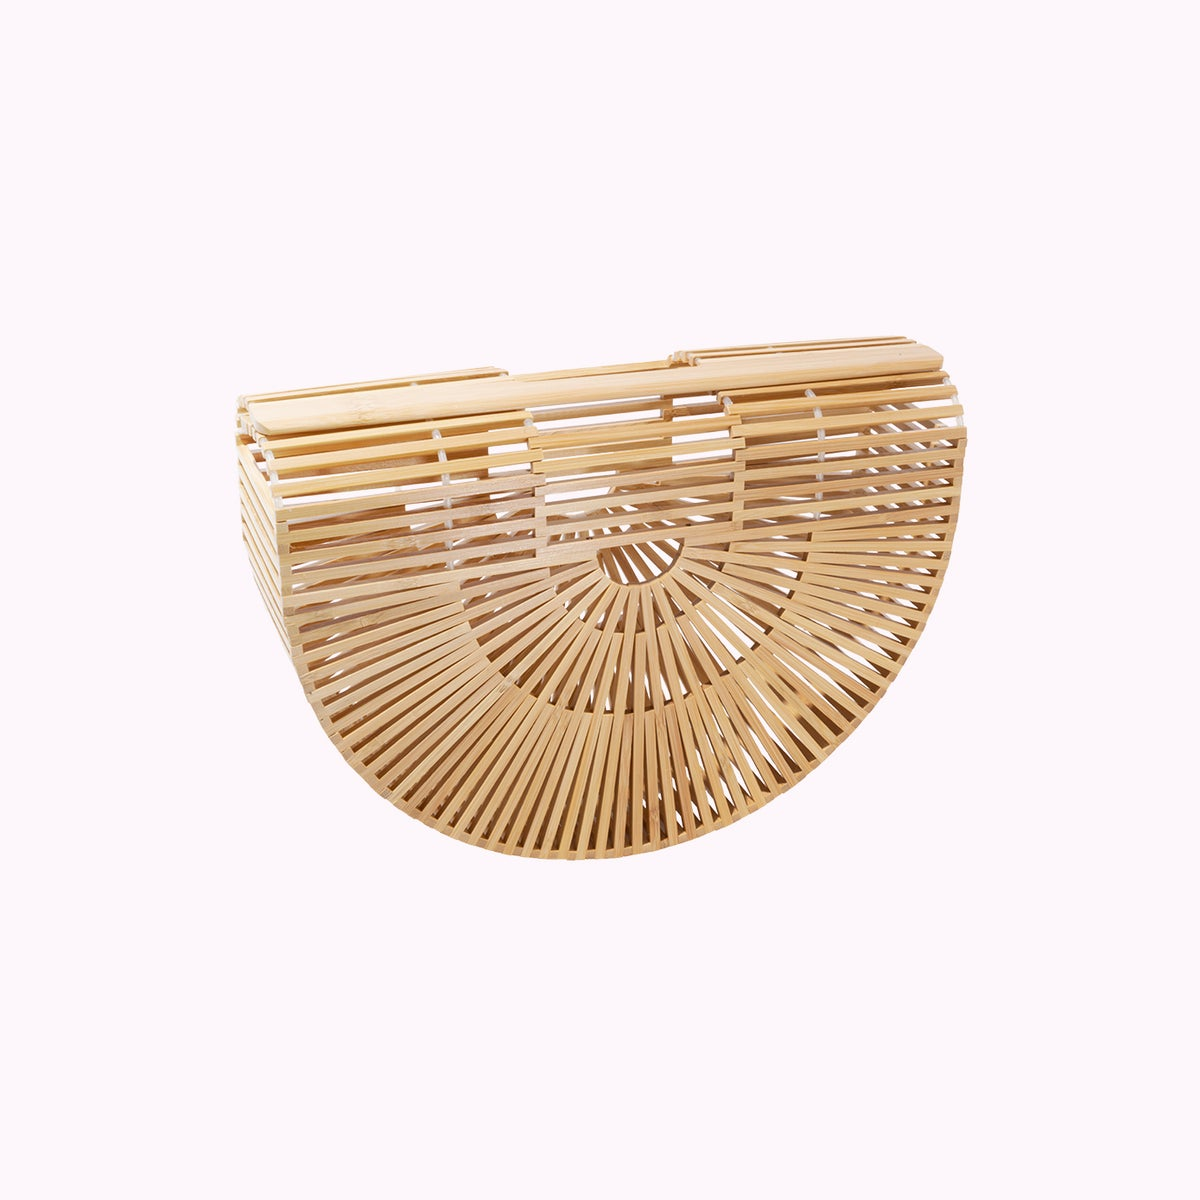 Image of BAMBOOYA | BAG